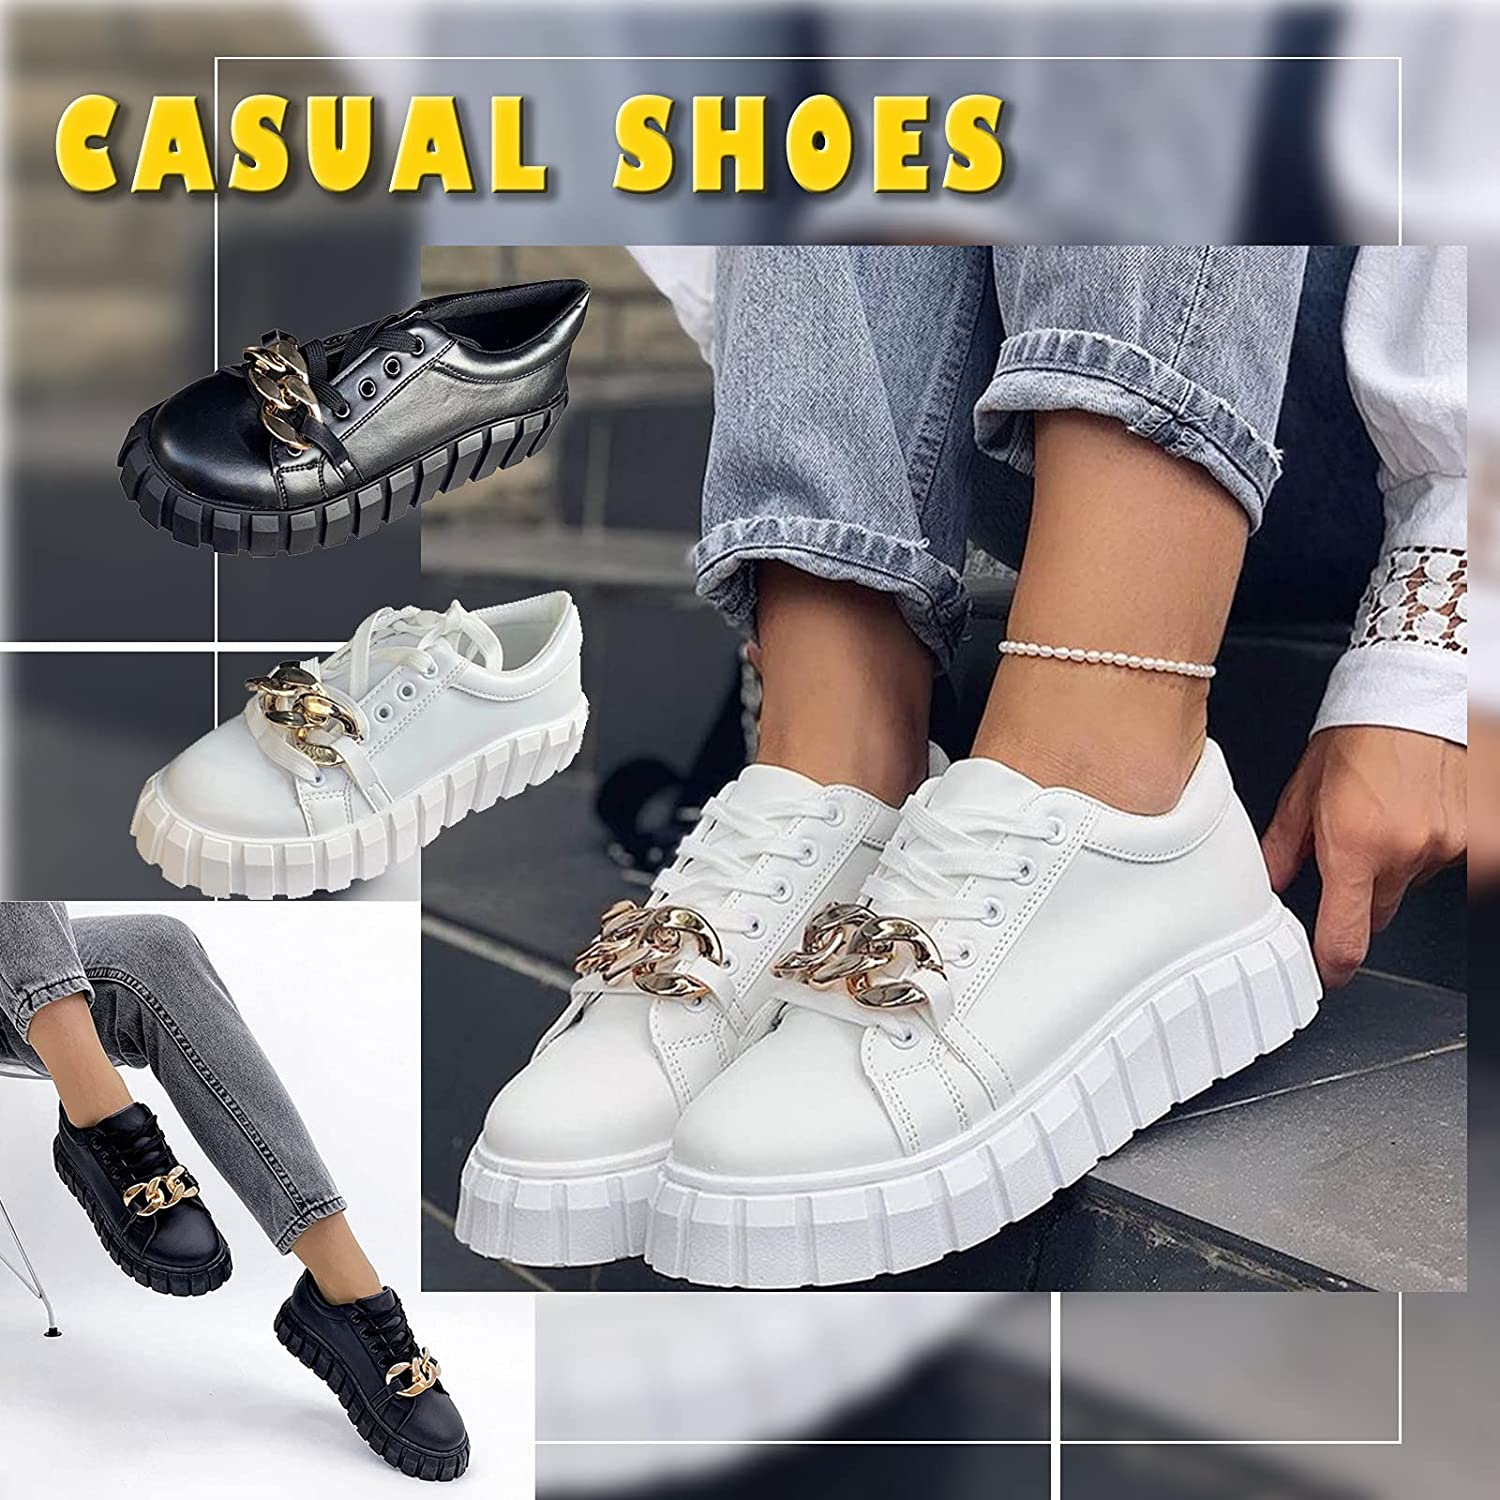 New Simple Comfortable Work Shoes For Women Running Shoes No-Slip Solid Color Outdoor Womens Walking Metal Chain Casual Shoes Round Toe Platform Sponge Cake Lace Up Single Shoe Students Shoes